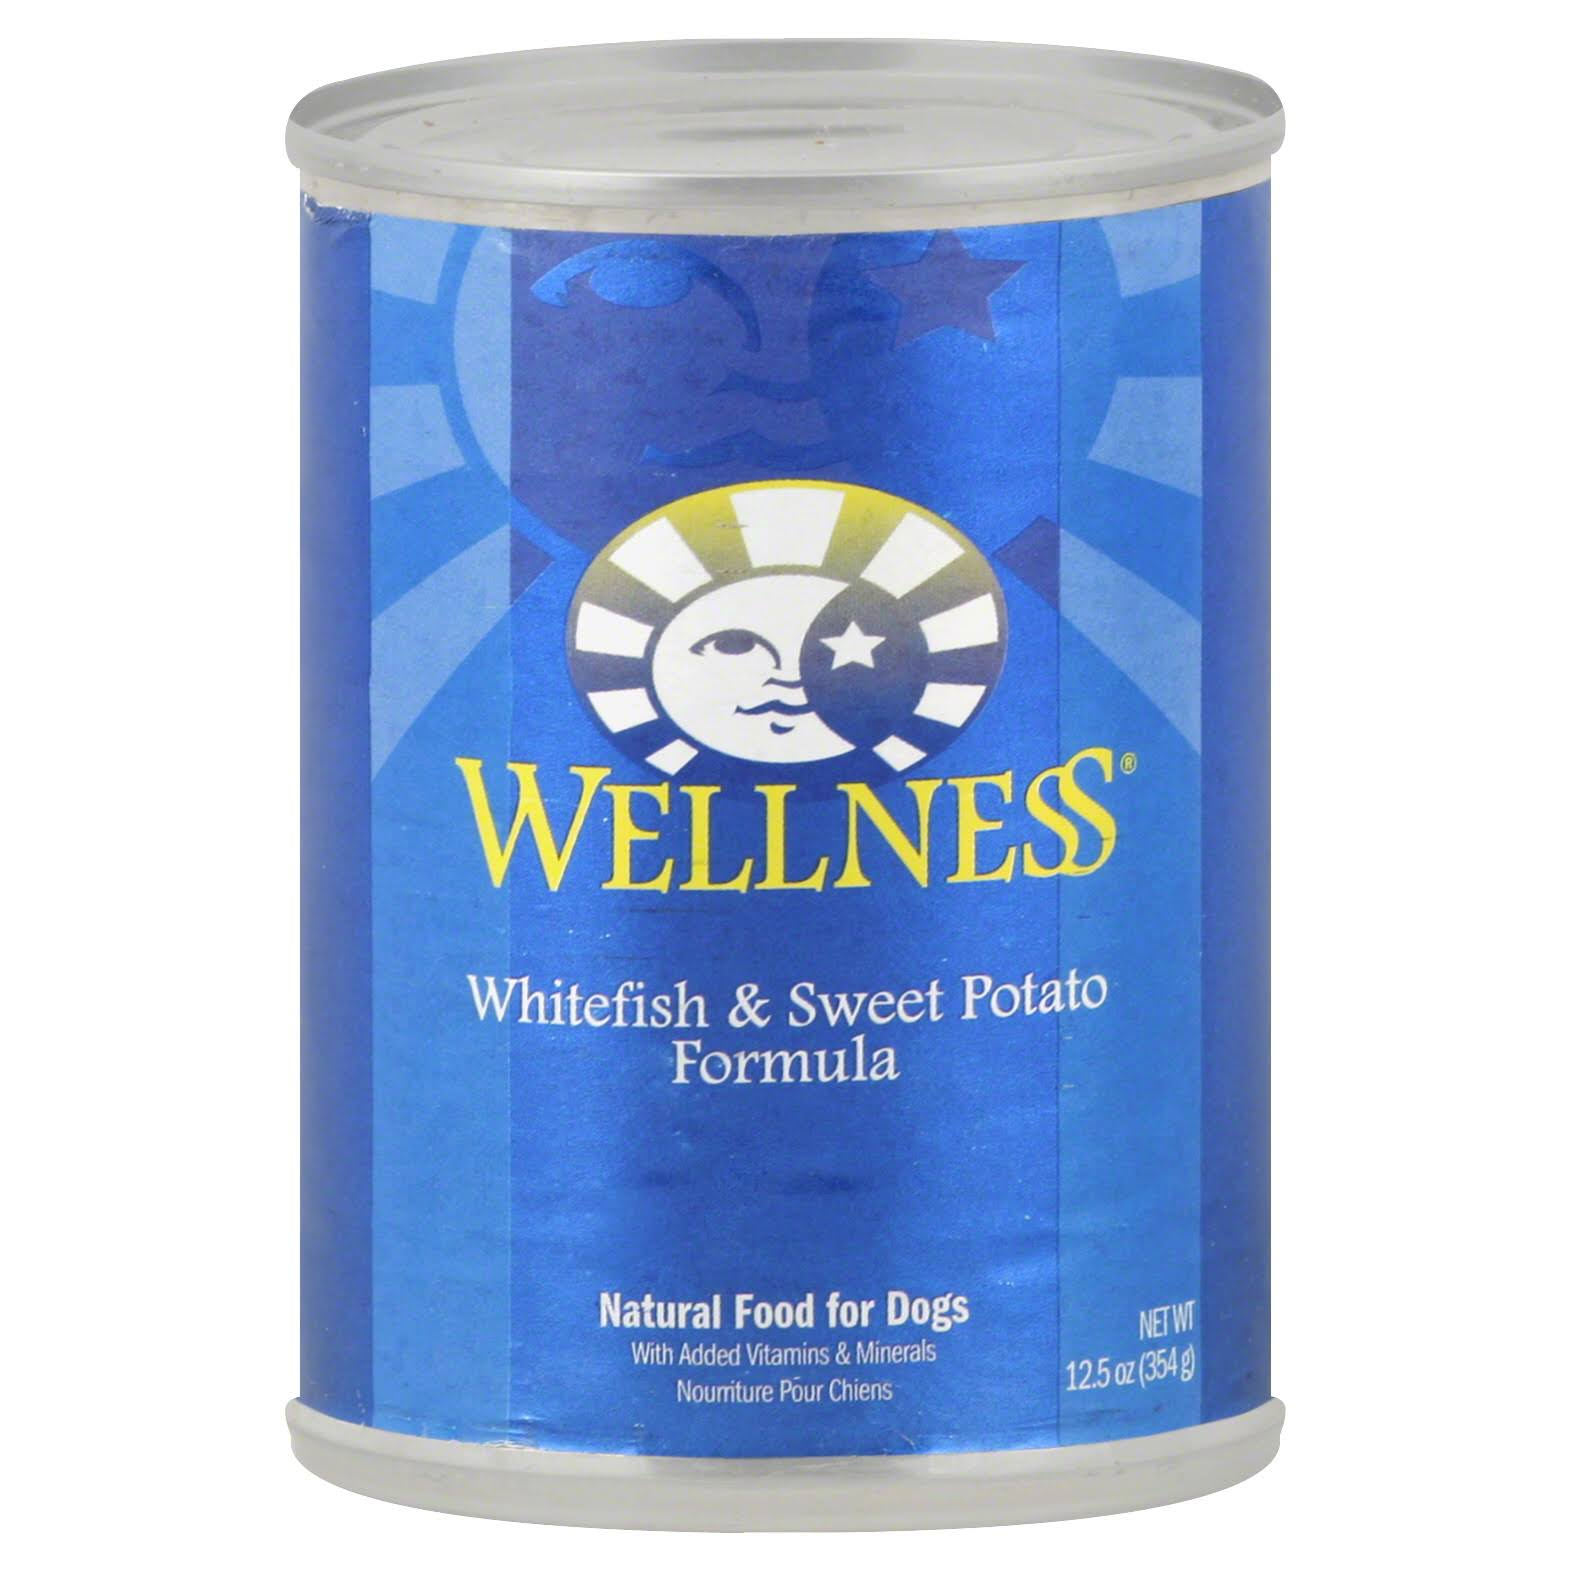 Wellness Natural Food for Dogs, Whitefish & Sweet Potato Formula - 12.5 oz